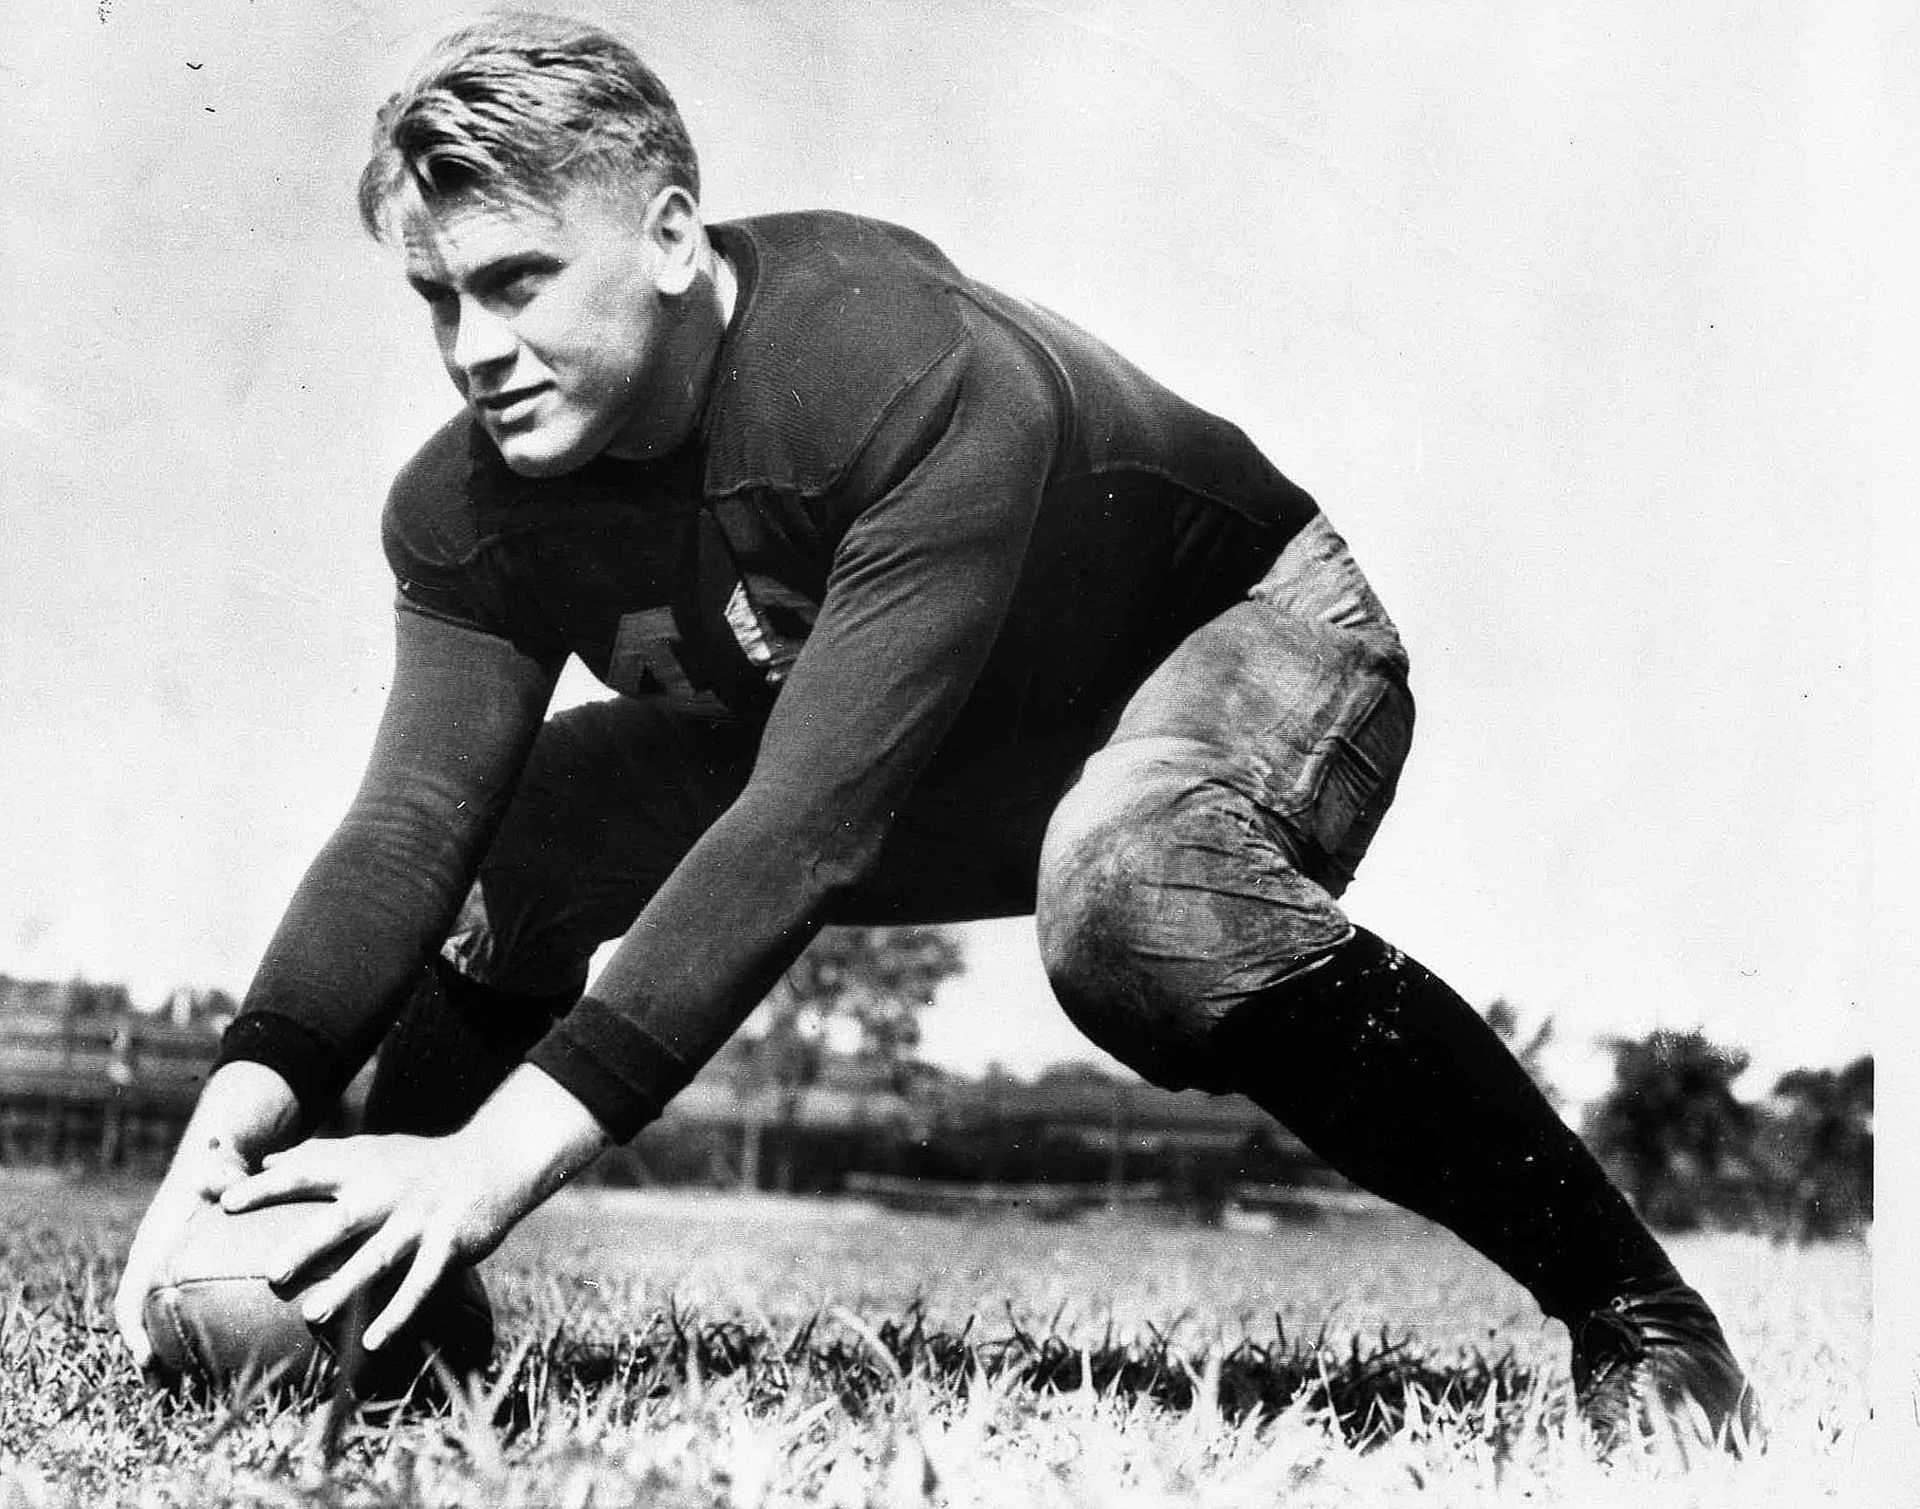 Ford during practice as a center on the University of Michigan football team, 1933